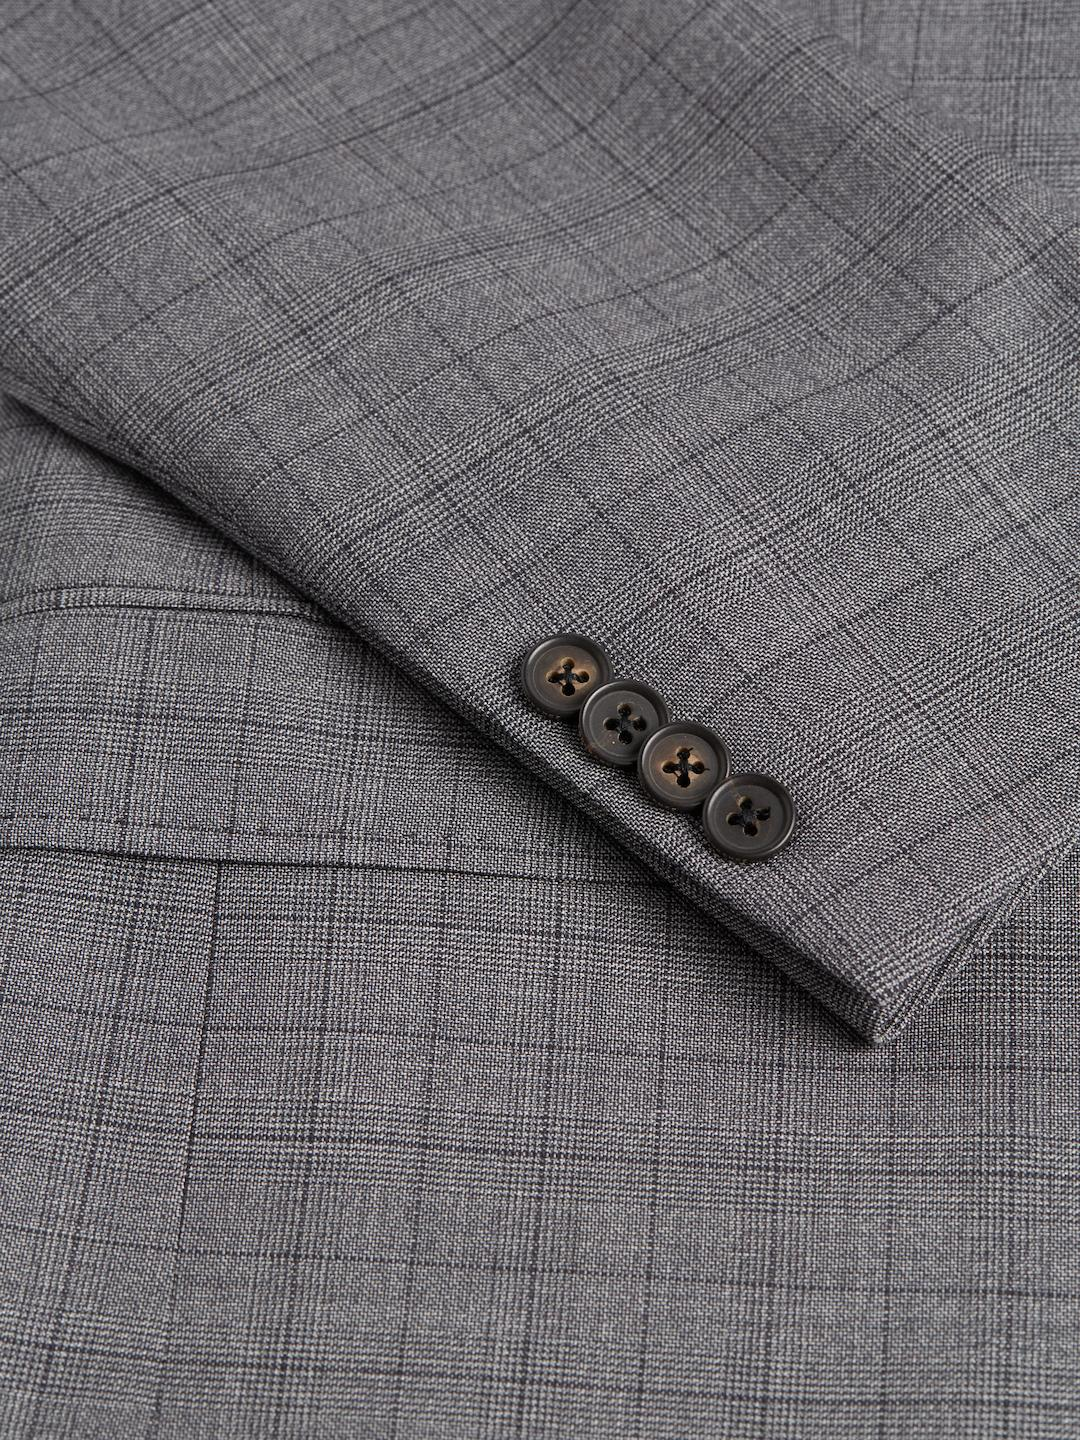 Ted Baker Wool Plaid Suit in Grey (Grey) for Men